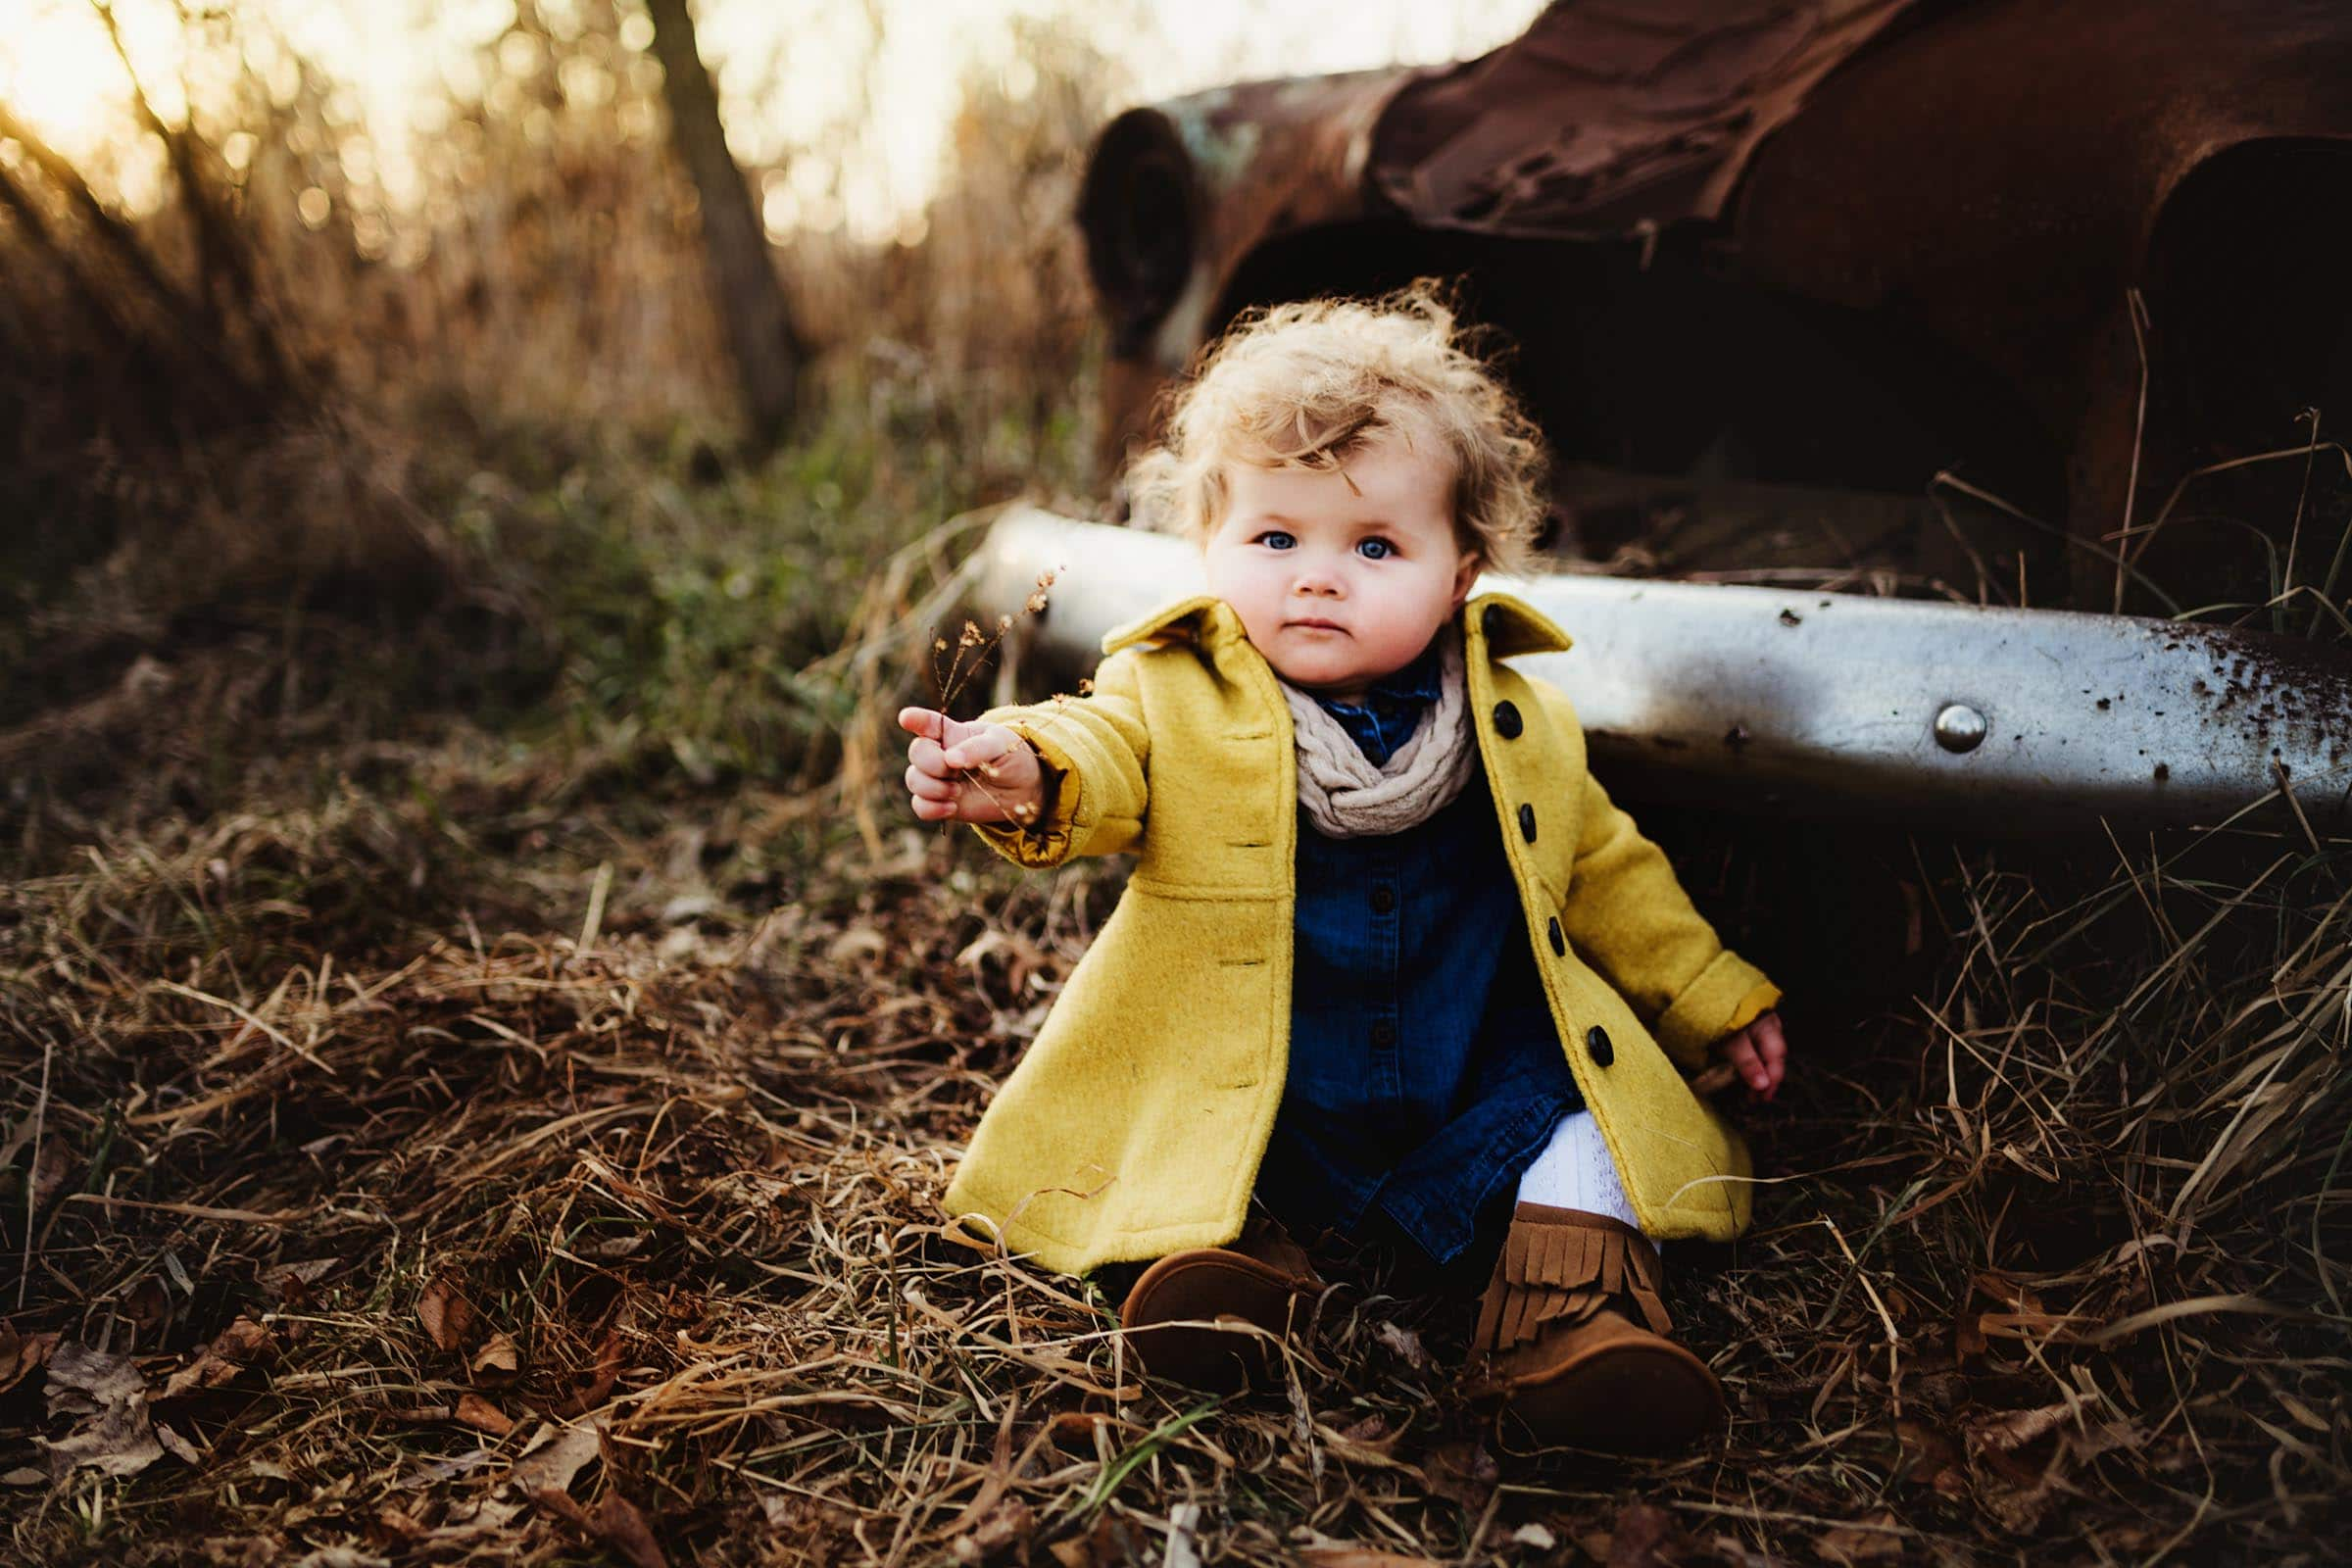 toddler in a yellow jacket sitting by old car